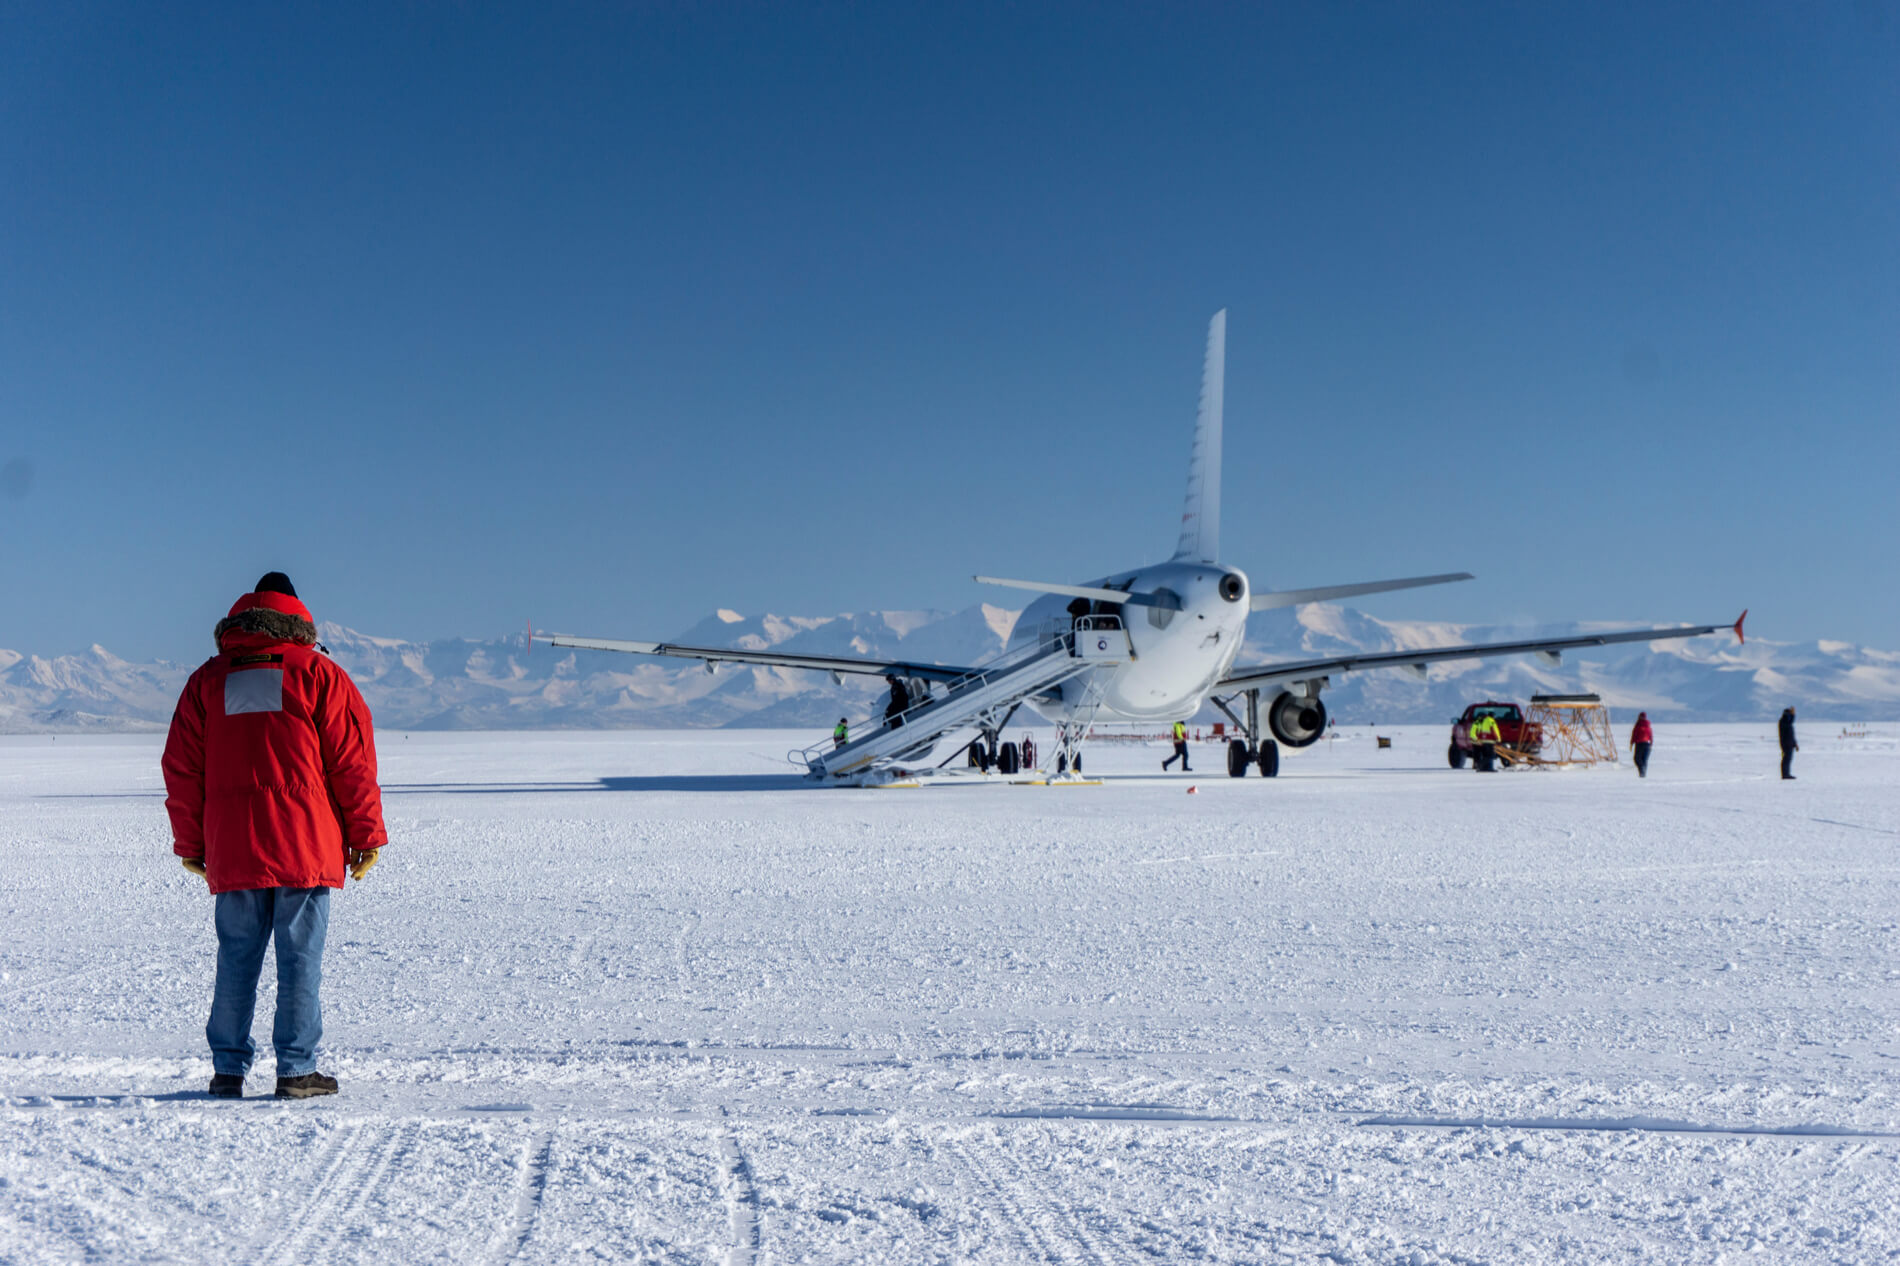 Antarctica airport project: plan and pushback